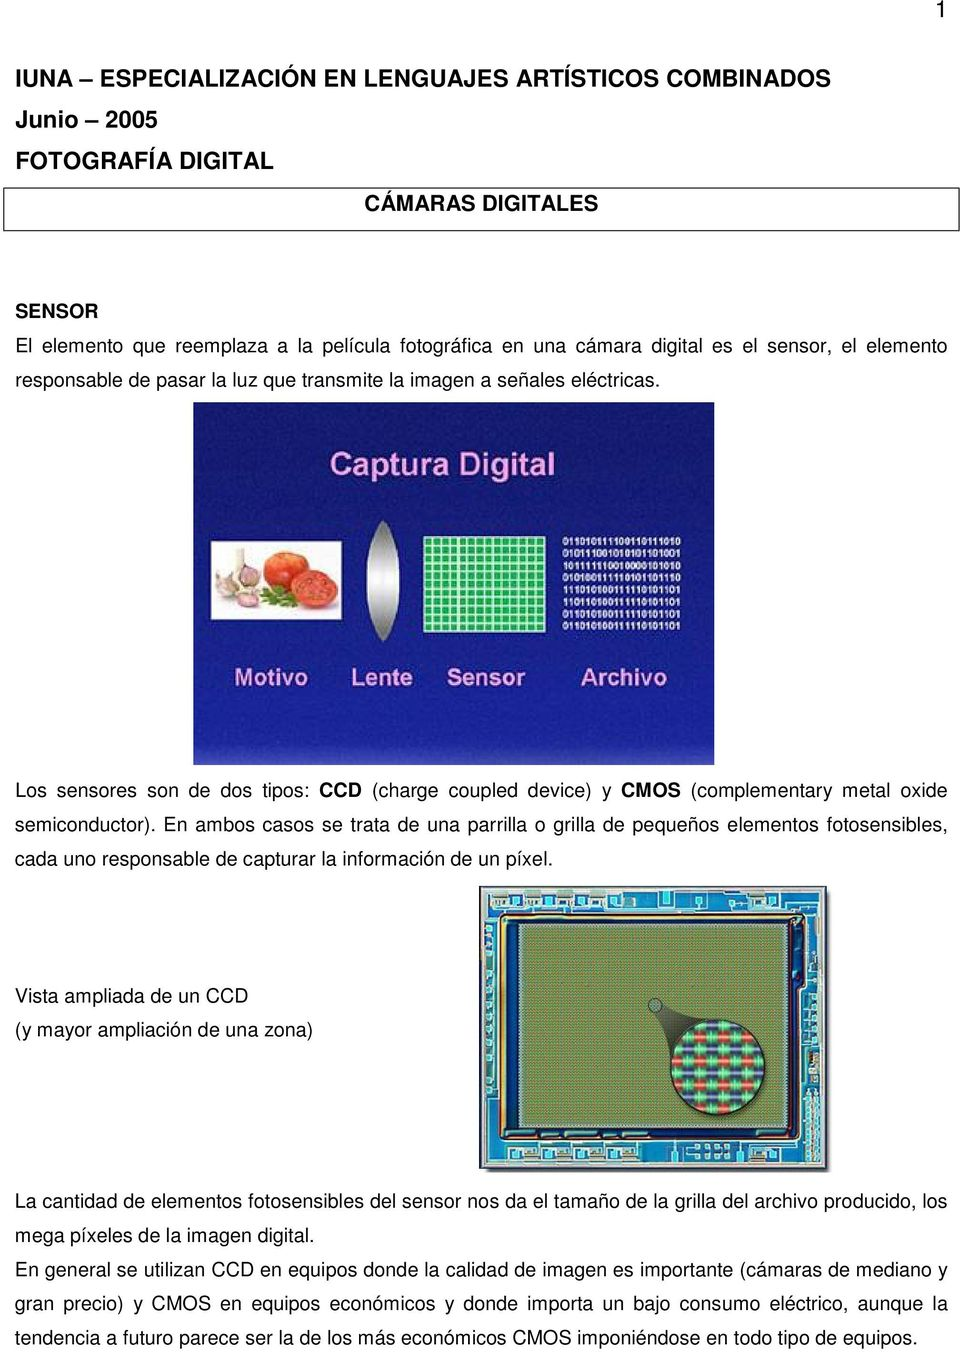 Los sensores son de dos tipos: CCD (charge coupled device) y CMOS (complementary metal oxide semiconductor).